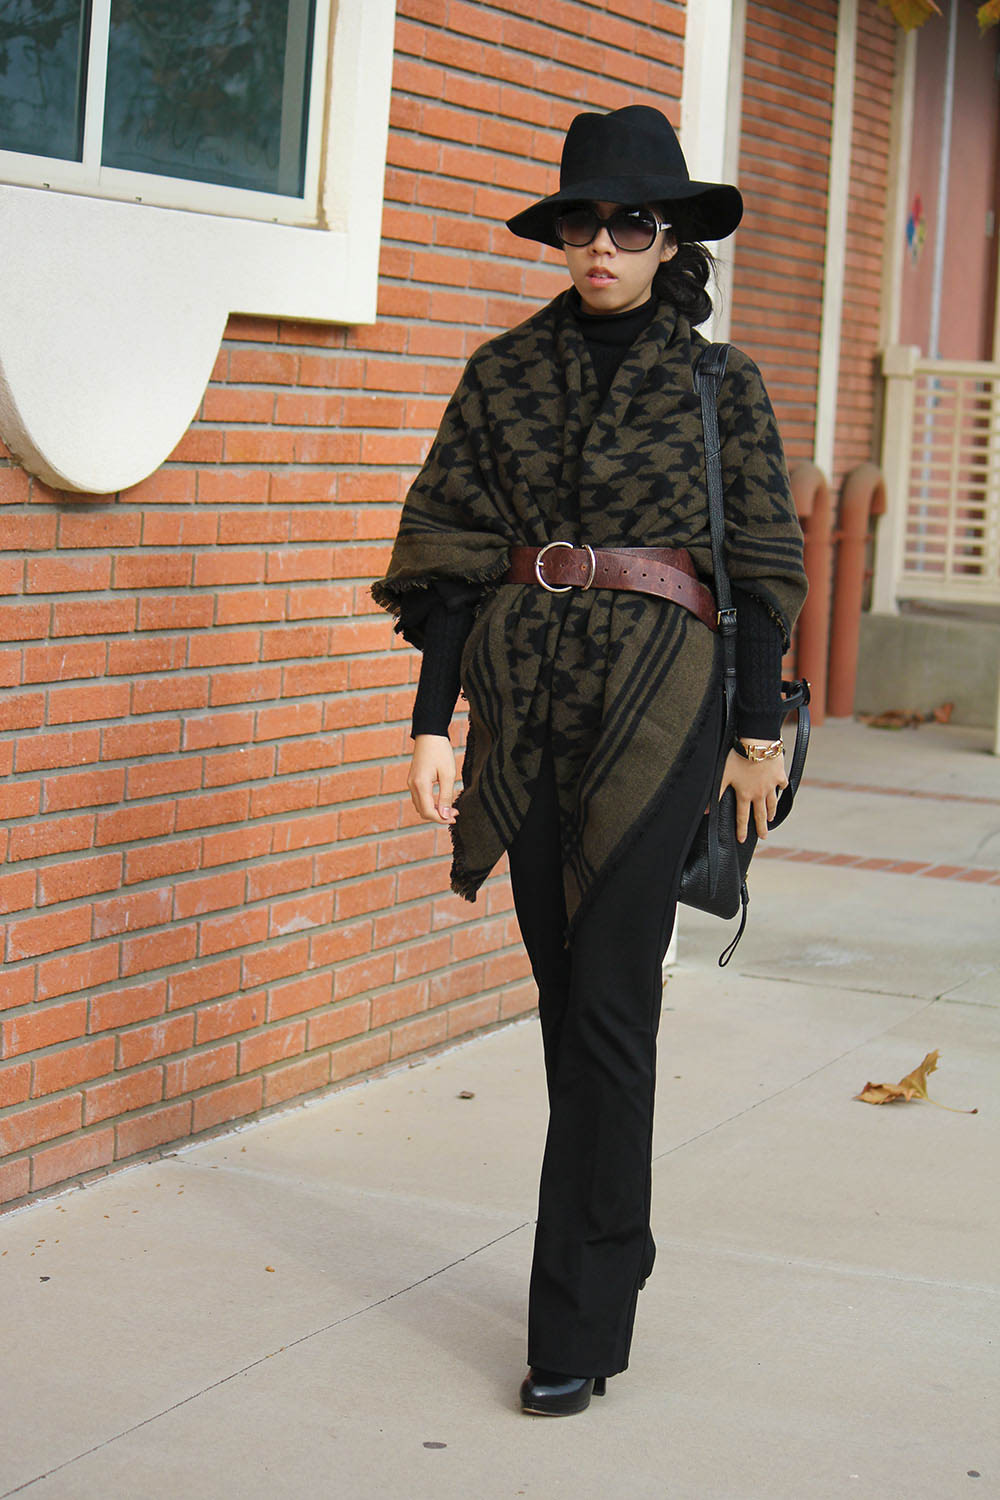 Adrienne Nguyen_How to wear an all black outfit_Invictus_Pharmacy Student